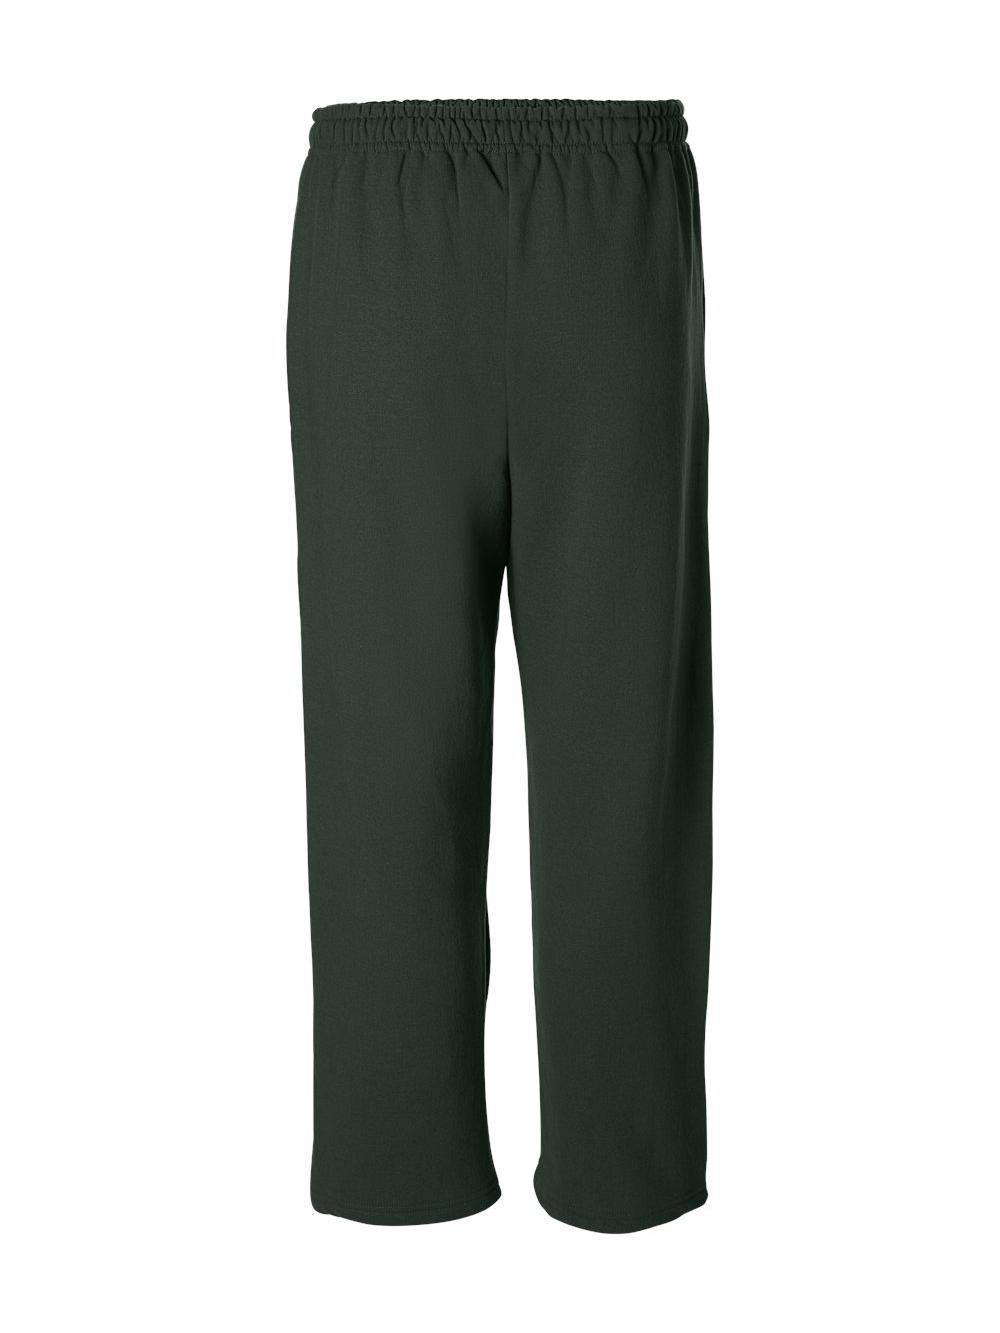 Gildan-Heavy-Blend-Open-Bottom-Sweatpants-18400 thumbnail 16